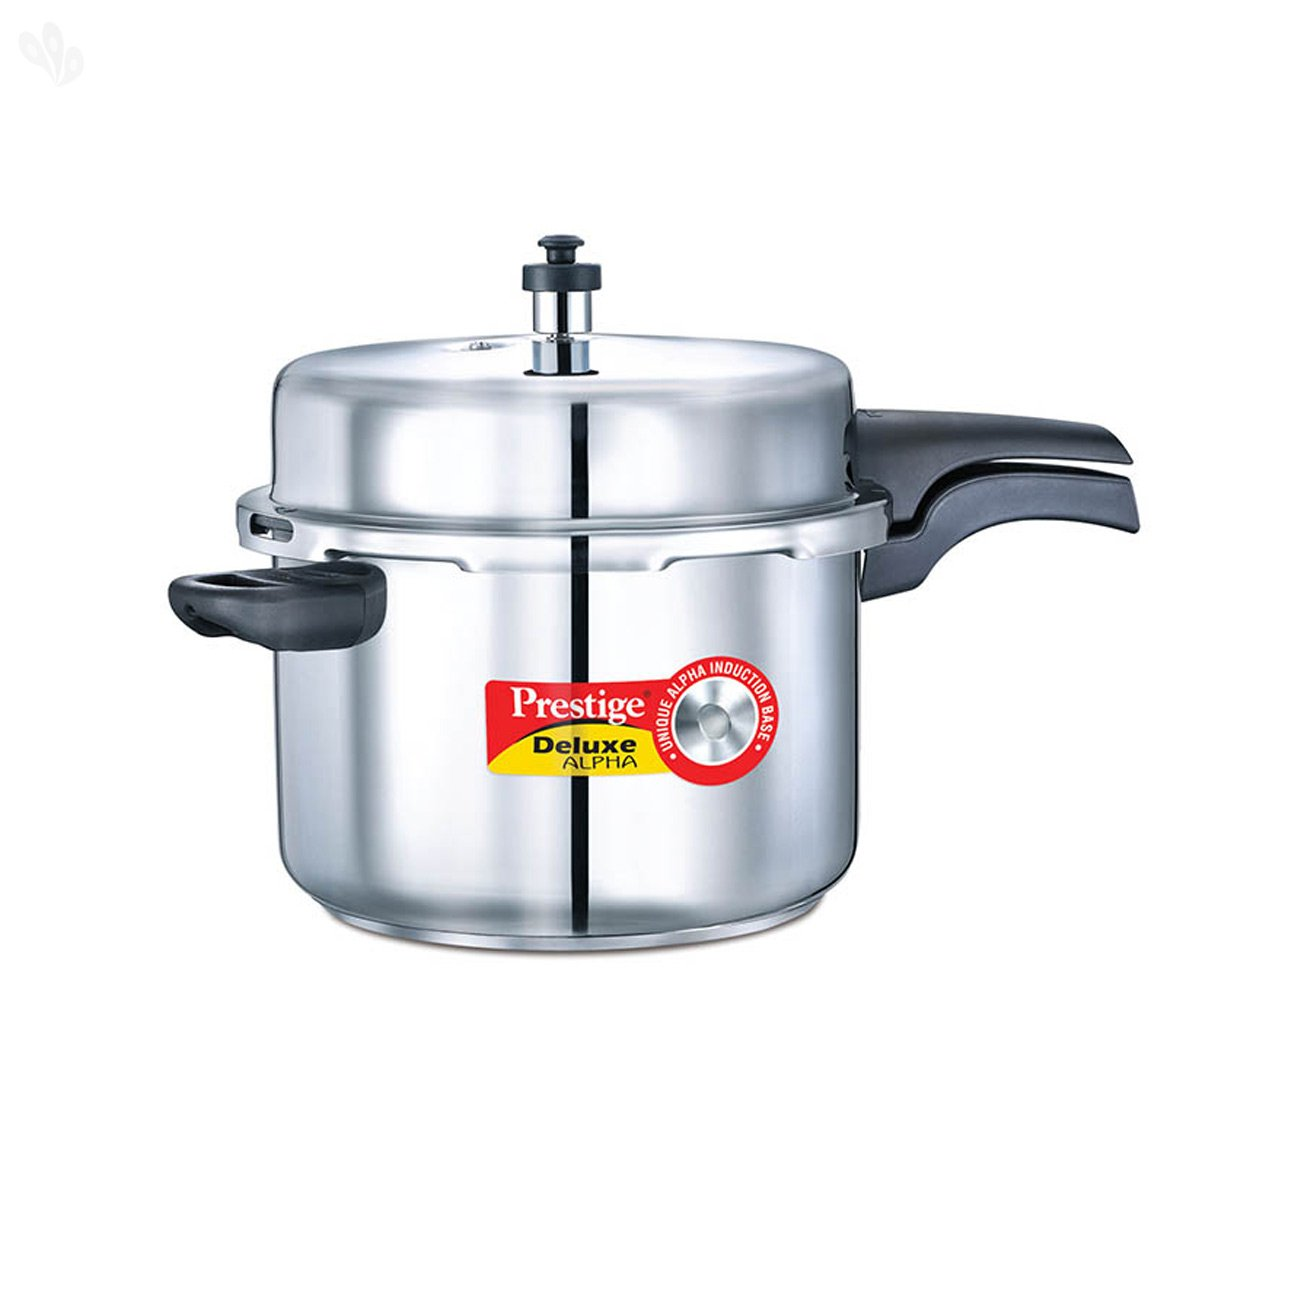 prestige 10 liters alpha deluxe stainless steel pressure cooker ebay. Black Bedroom Furniture Sets. Home Design Ideas